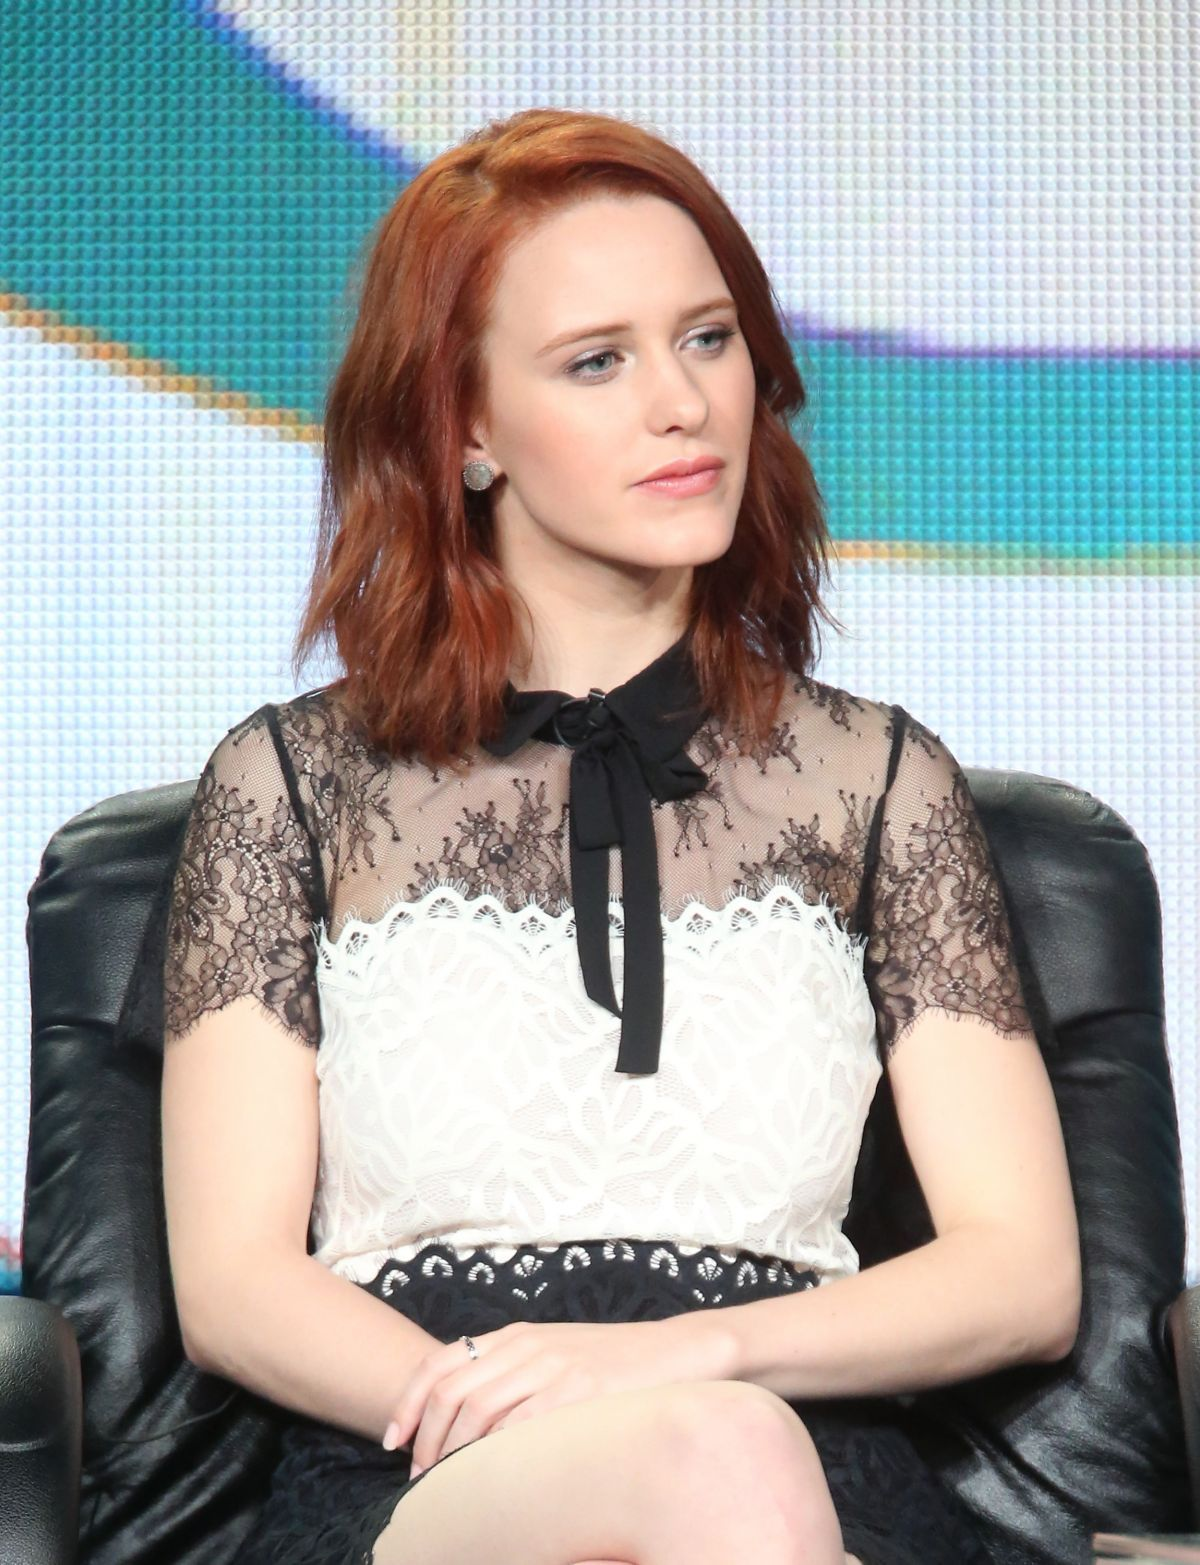 rachel brosnahan redditrachel brosnahan orange is the new black, rachel brosnahan instagram, rachel brosnahan twitter, rachel brosnahan, rachel brosnahan imdb, rachel brosnahan boyfriend, rachel brosnahan manhattan, rachel brosnahan interview, rachel brosnahan reddit